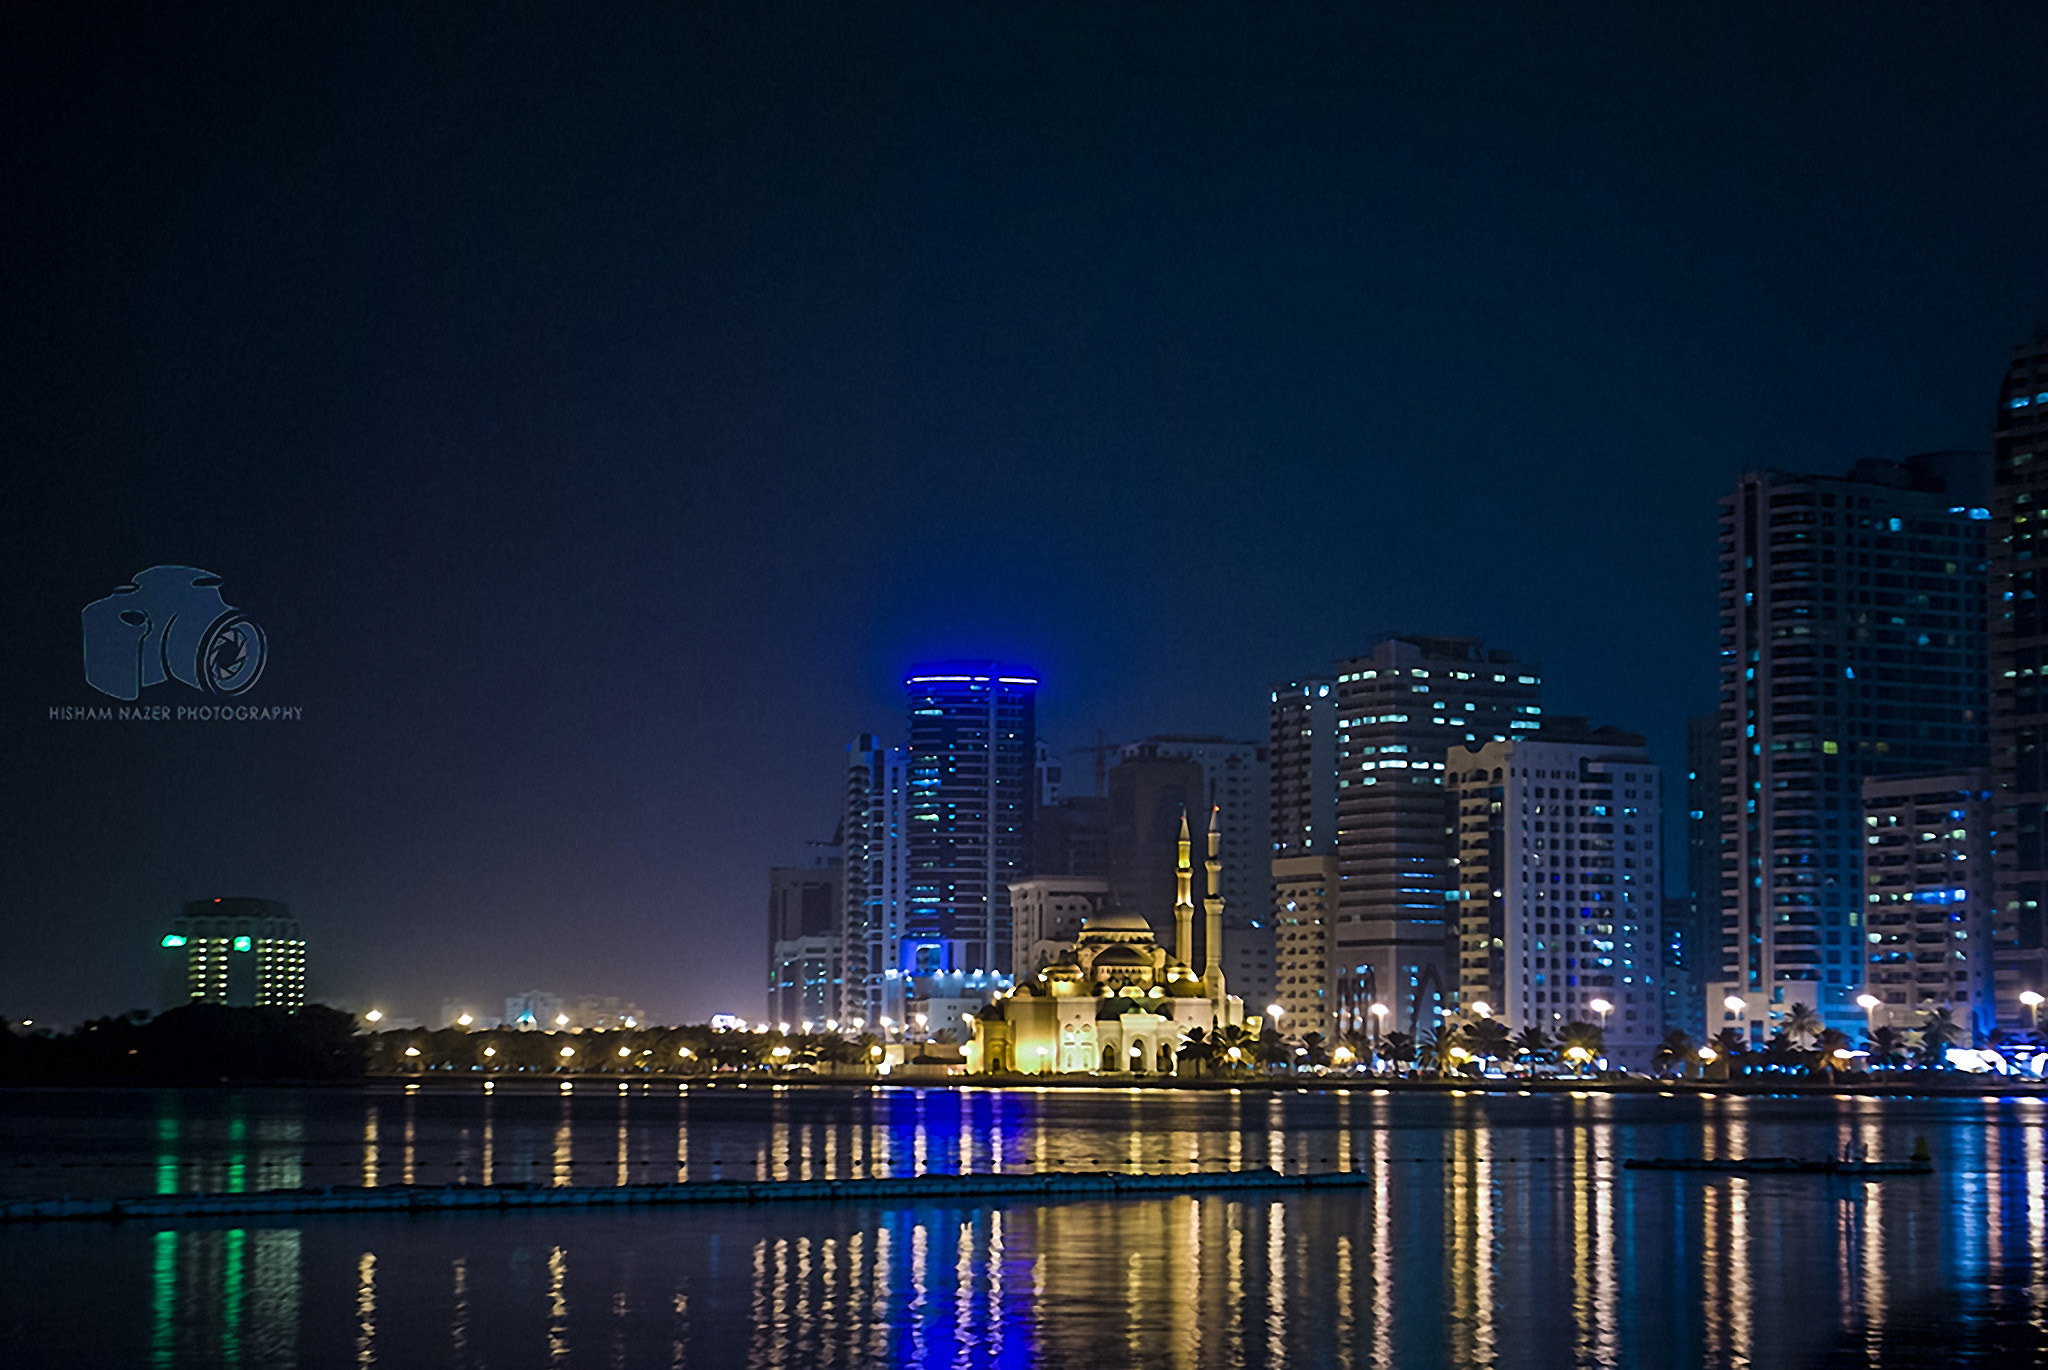 Photograph Golden City of Sharjah by Hisham Nazer on 500px